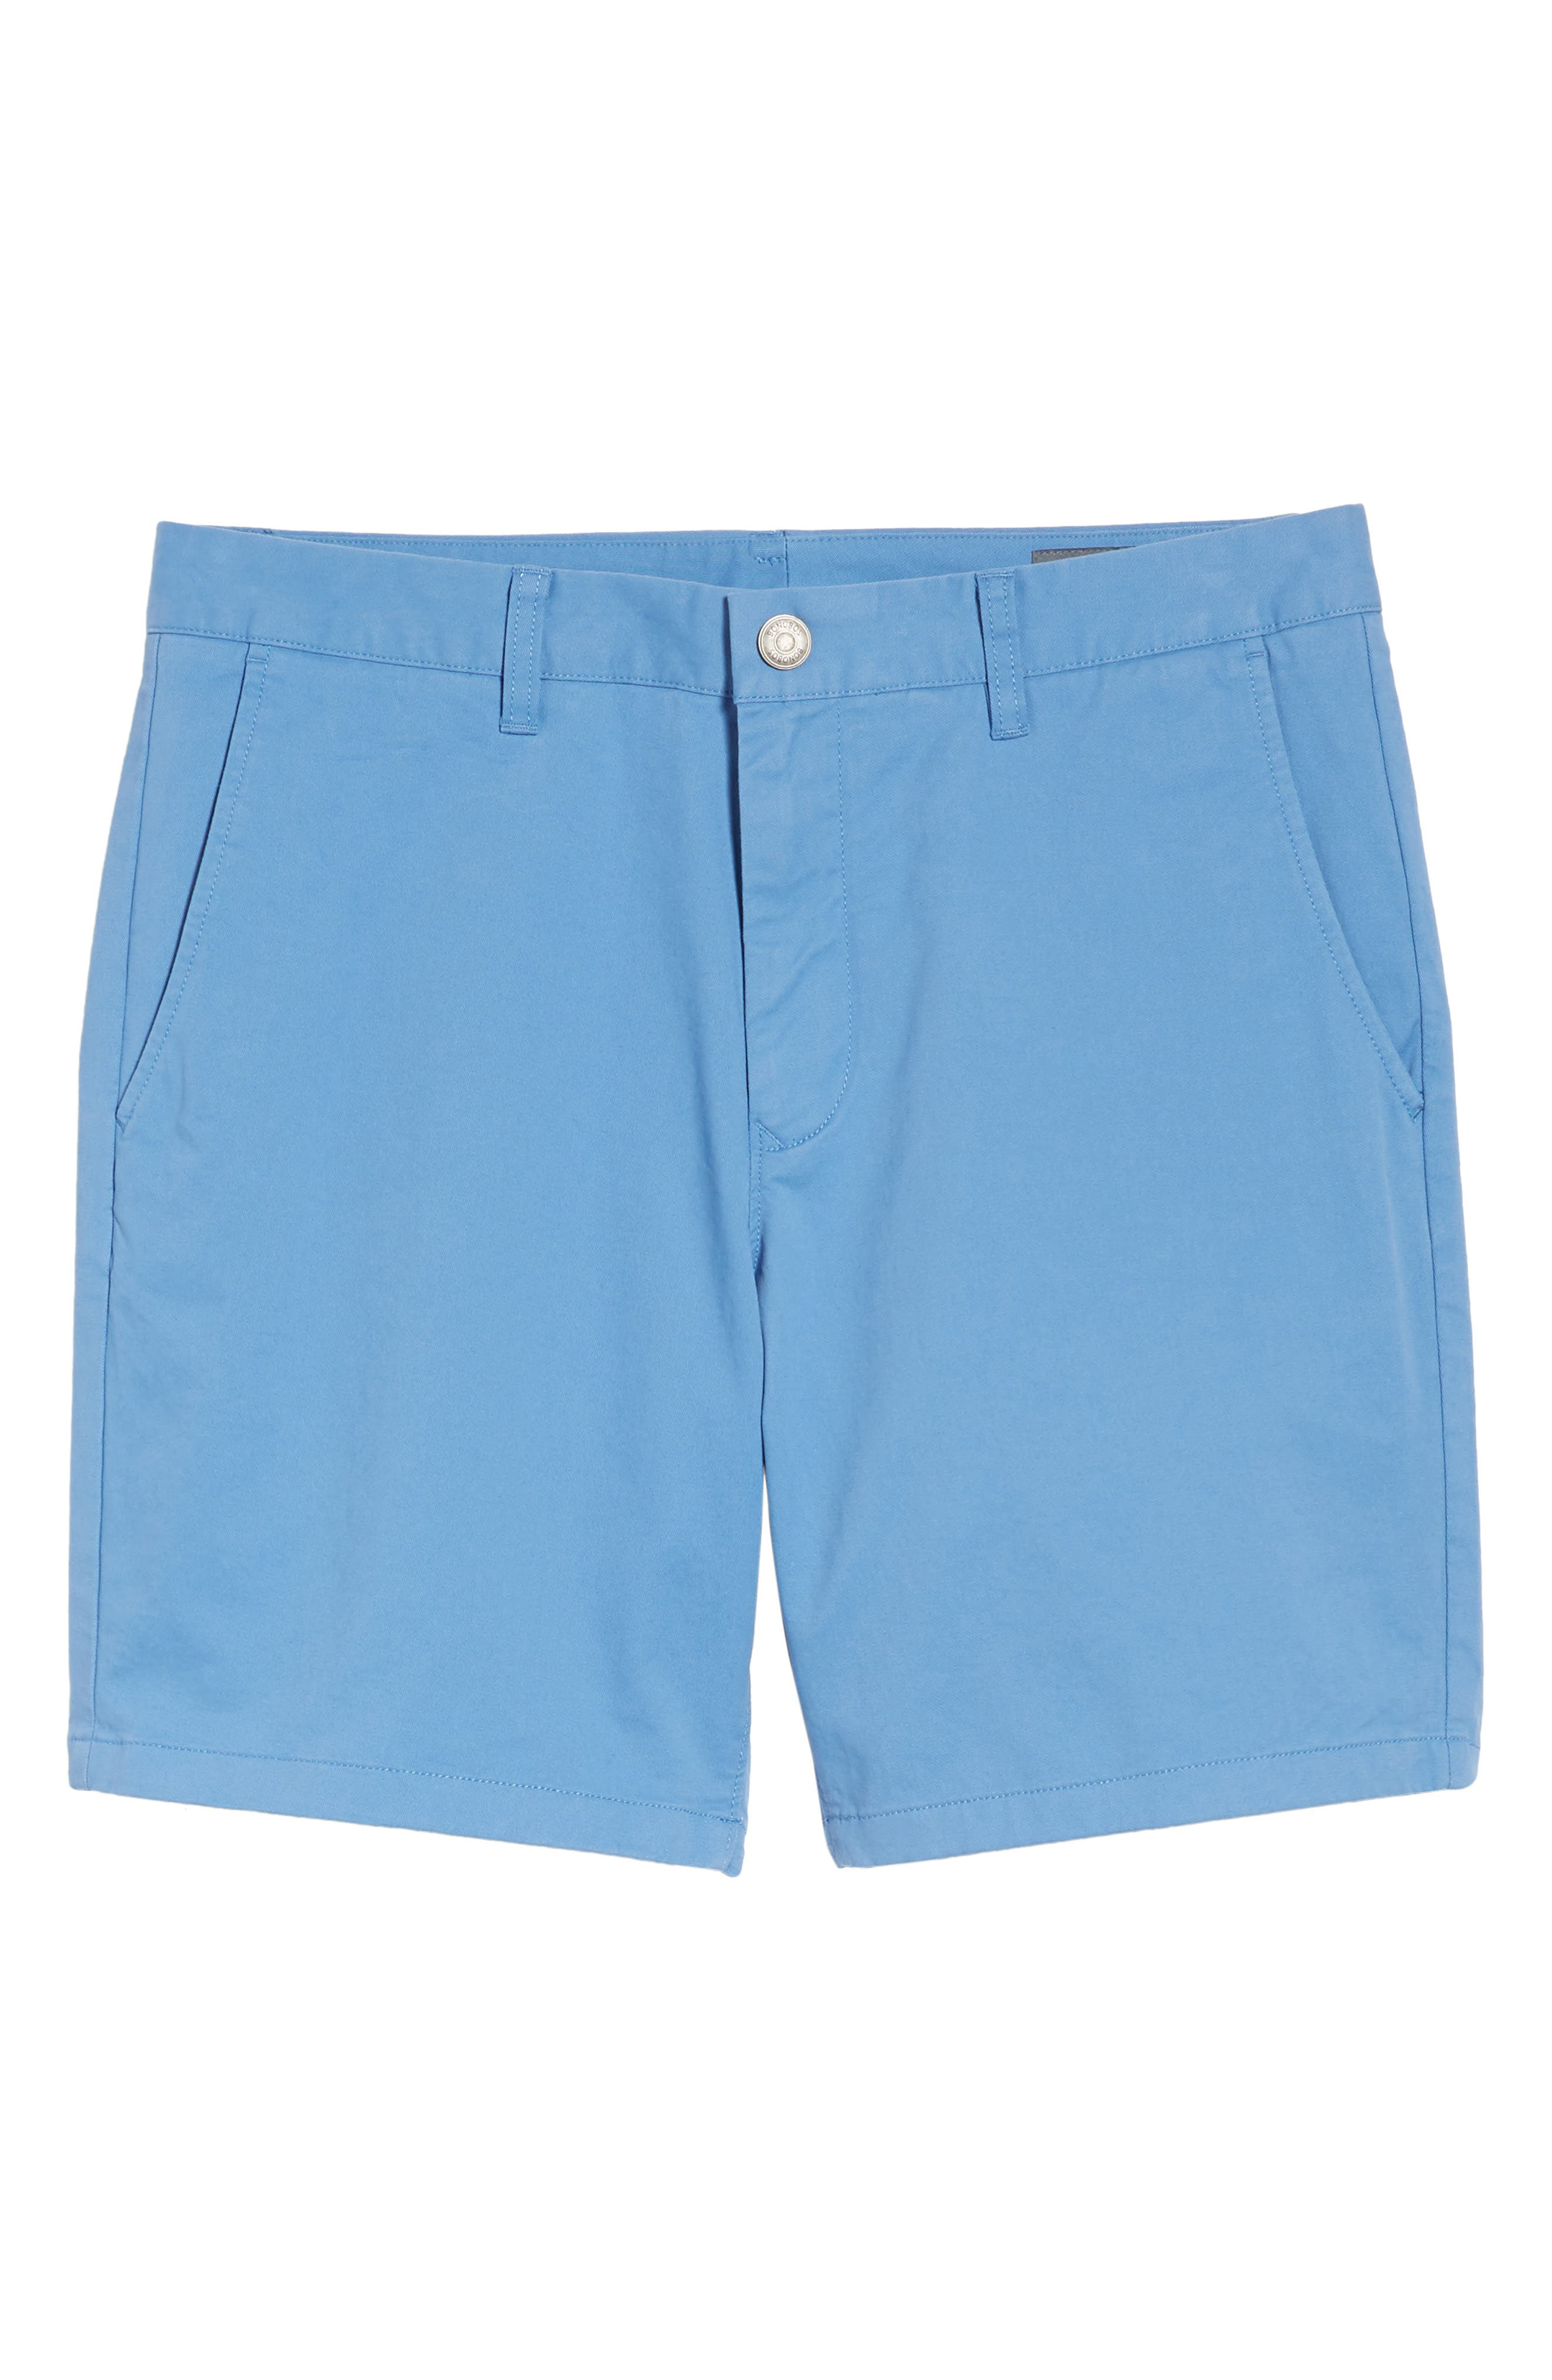 Stretch Washed Chino 7-Inch Shorts,                             Alternate thumbnail 113, color,